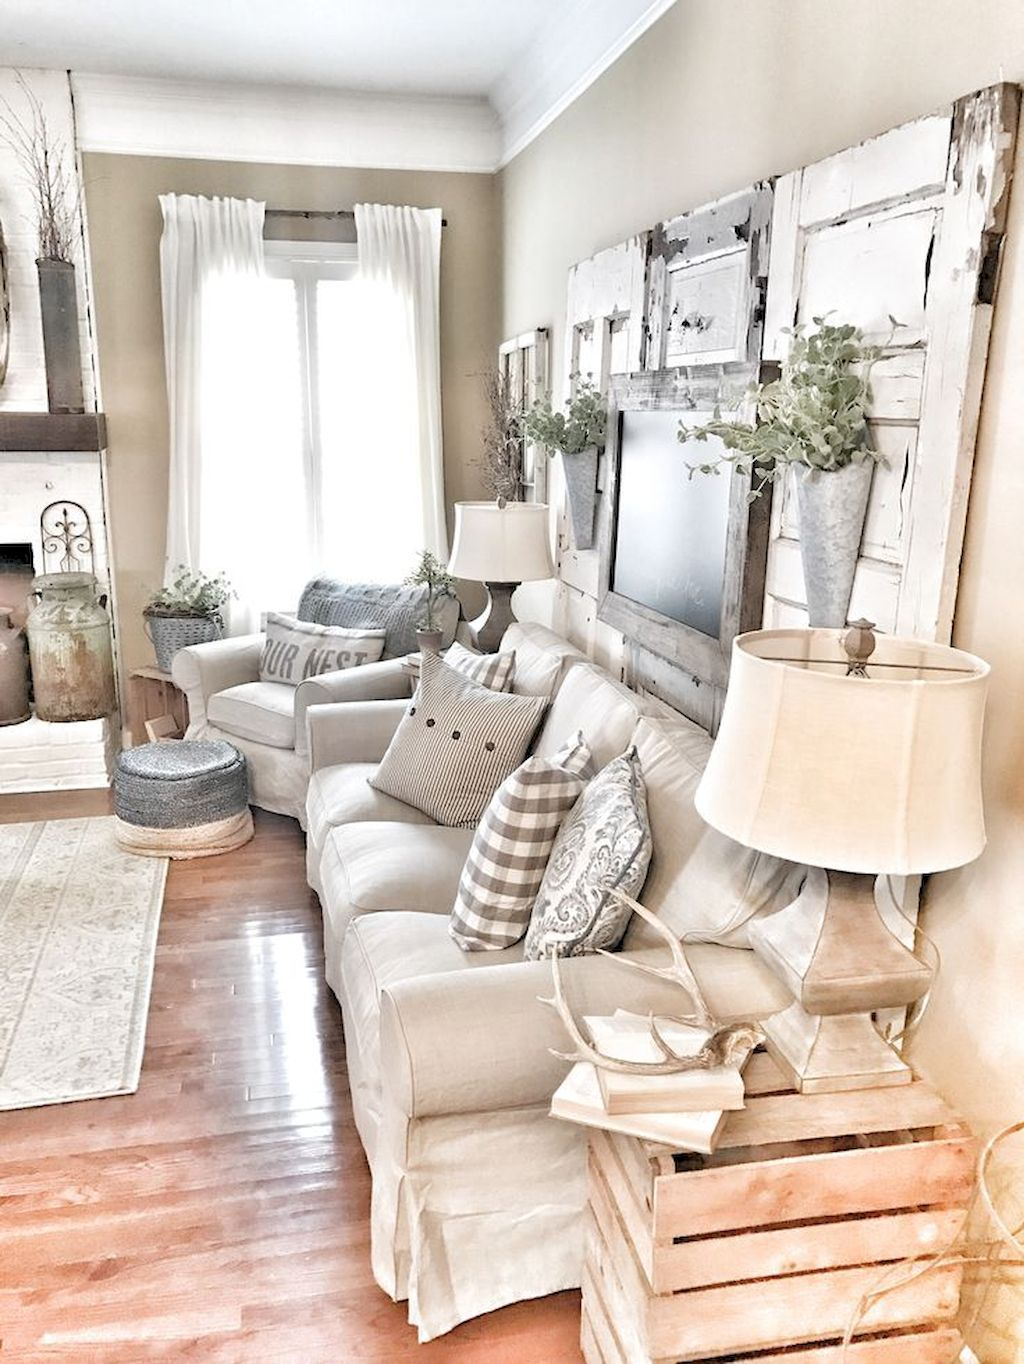 27 Rustic Farmhouse Living Room Decor Ideas For Your Homehttps Oneonroom